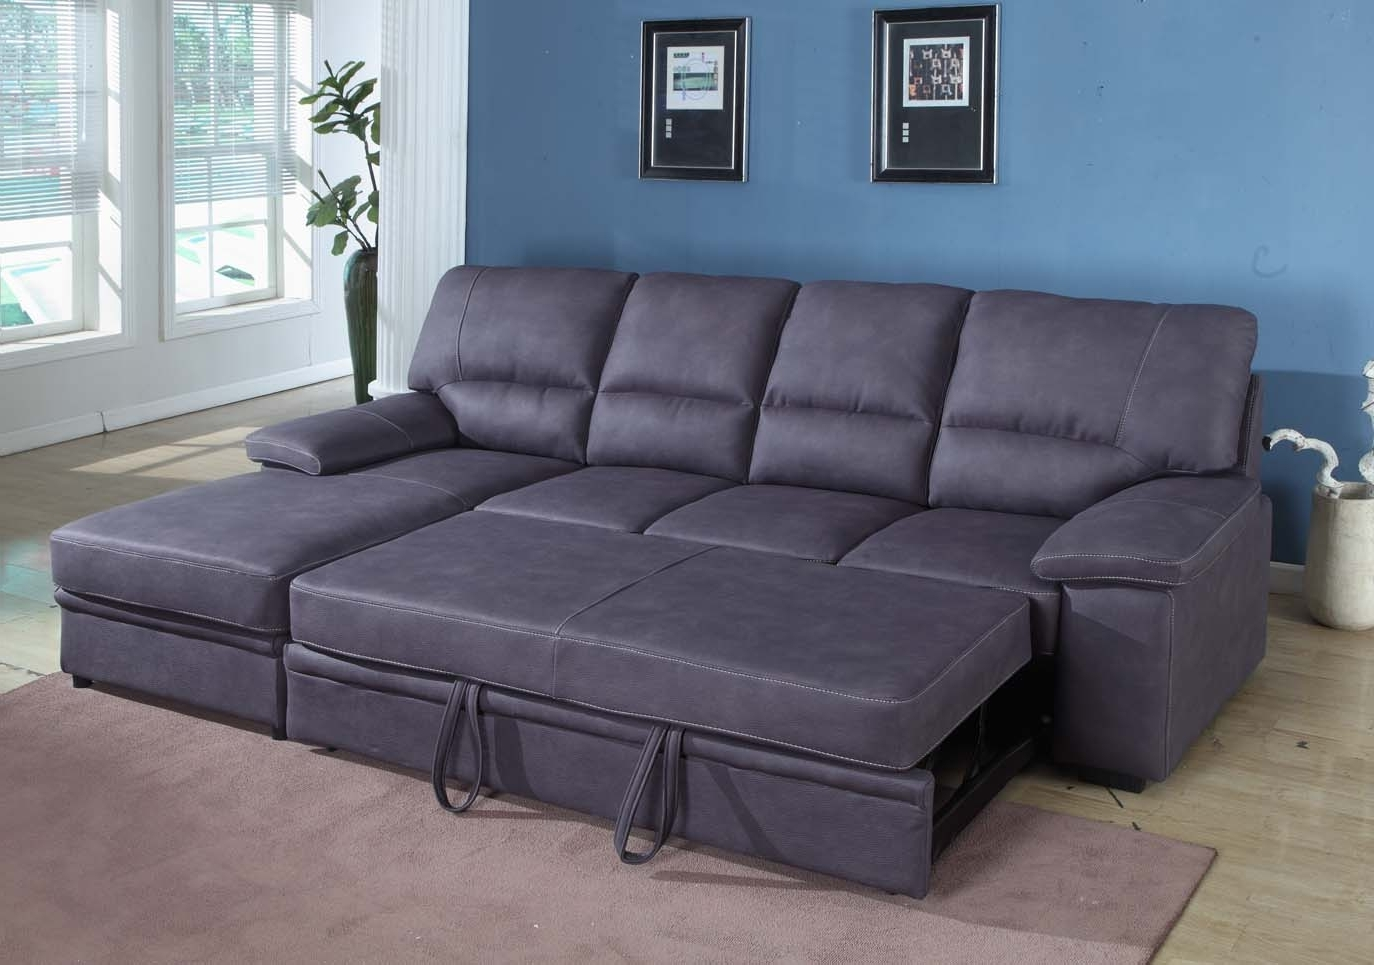 Grey Sleeper Sectional Sofa (Gallery 2 of 20)